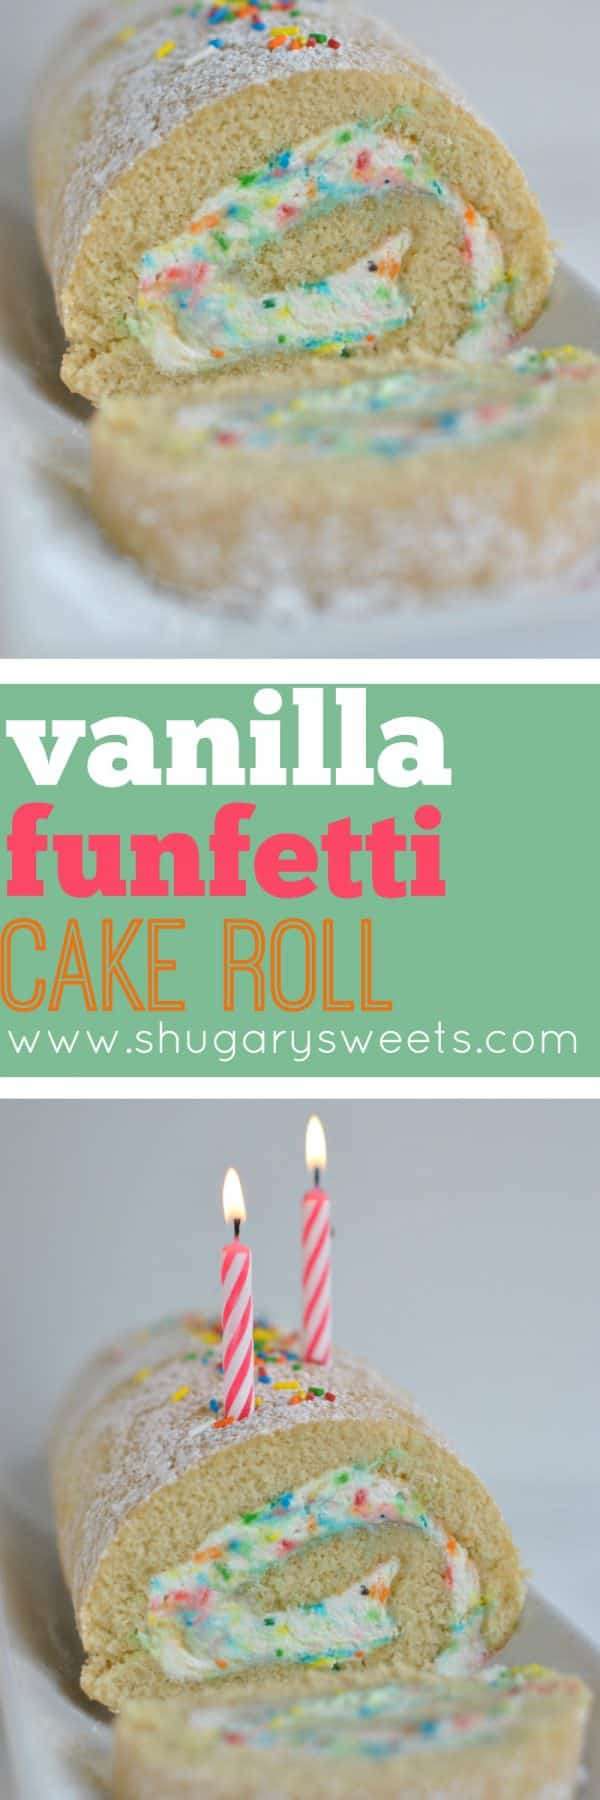 Delicious Vanilla Sponge Cake Roll with homemade Funfetti Whipped Cream filling. Perfect summer dessert!